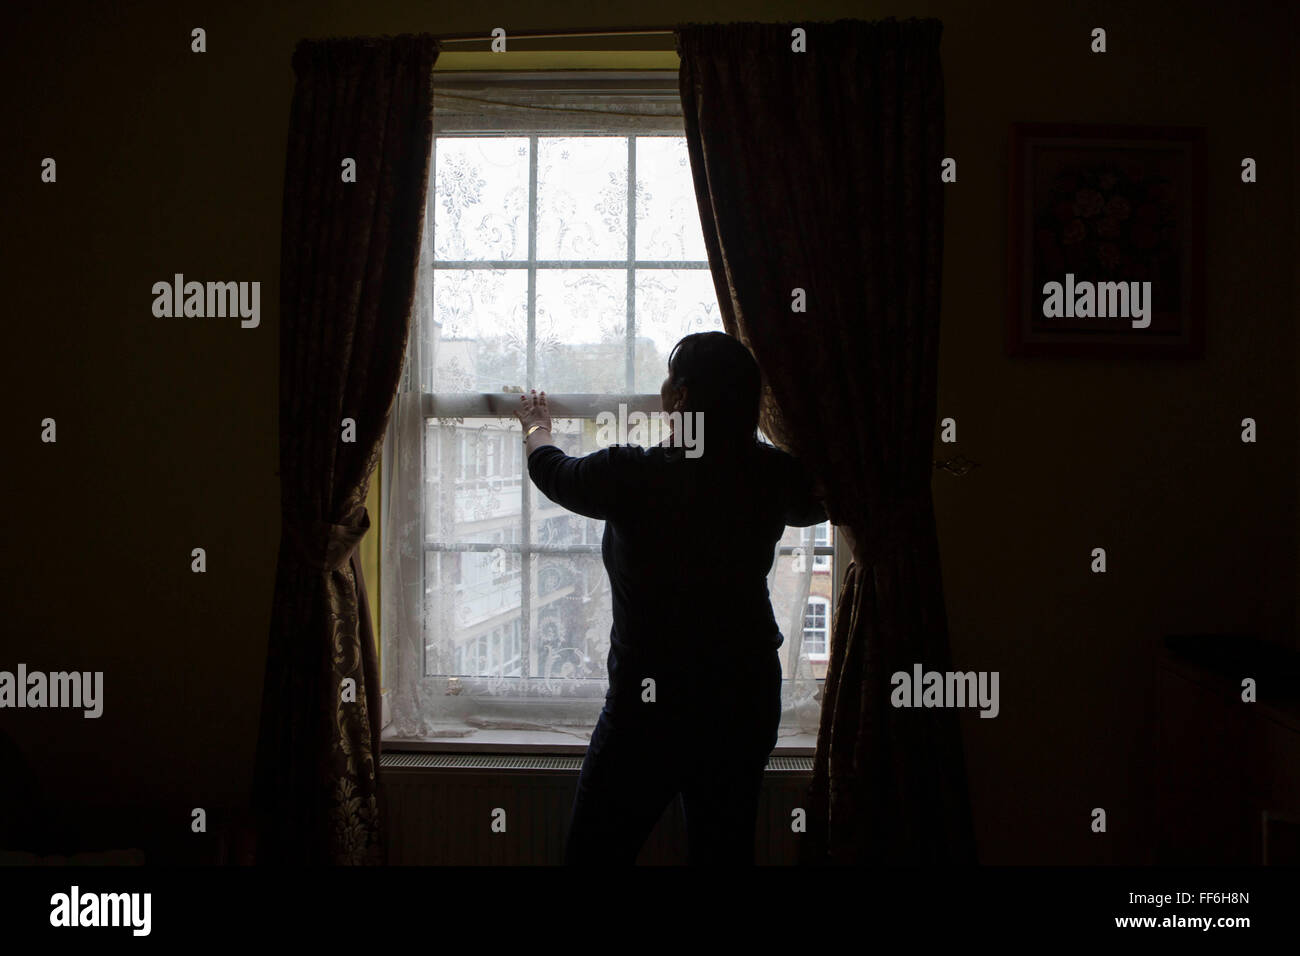 An unidentified lady stands silhouetted in front of her living room window. Isolation and mental health issues in - Stock Image